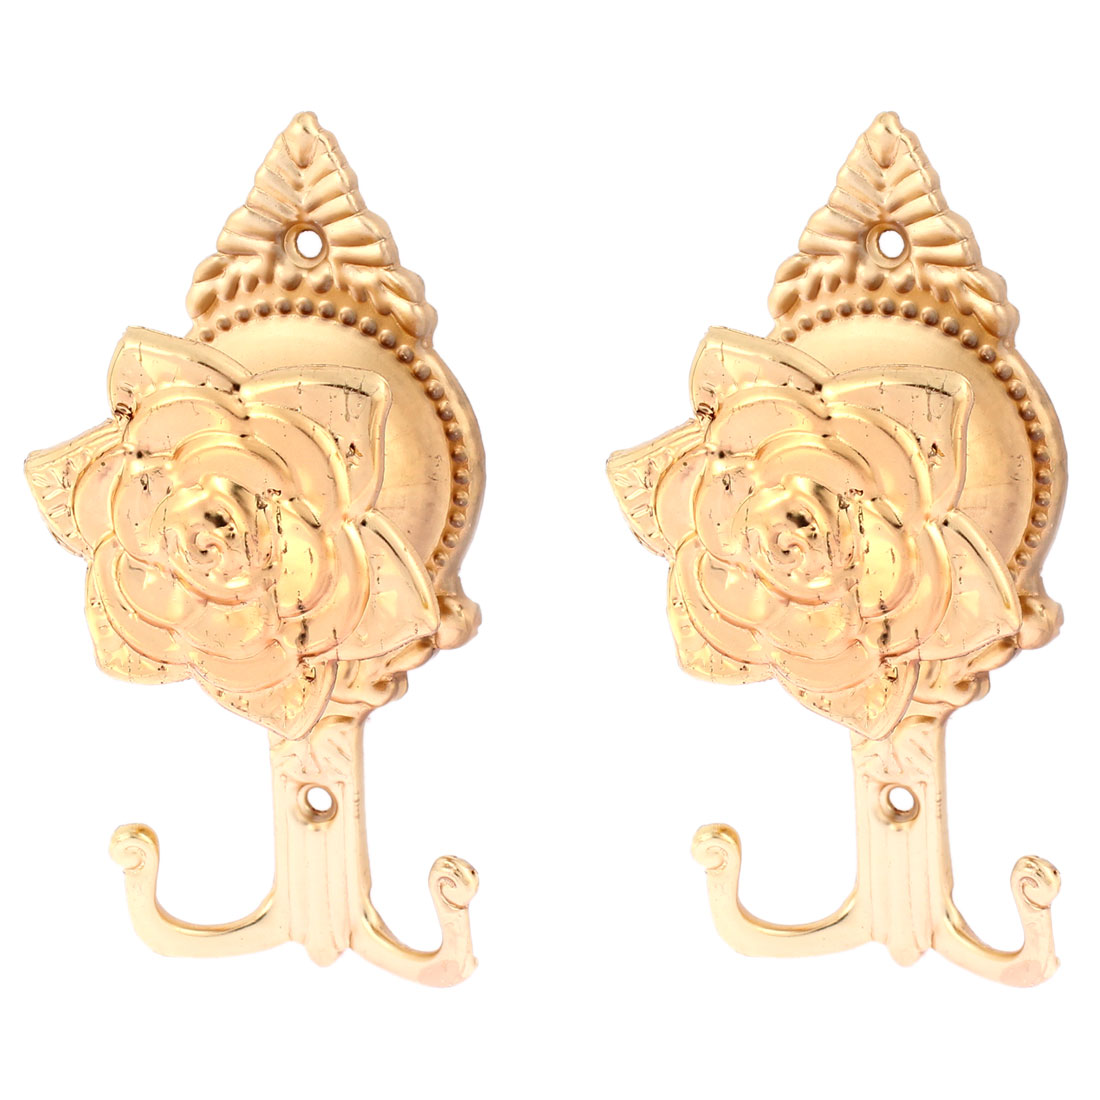 Window Curtain Rose Shape Wall Hanger Hooks Gold Tone 2Pcs